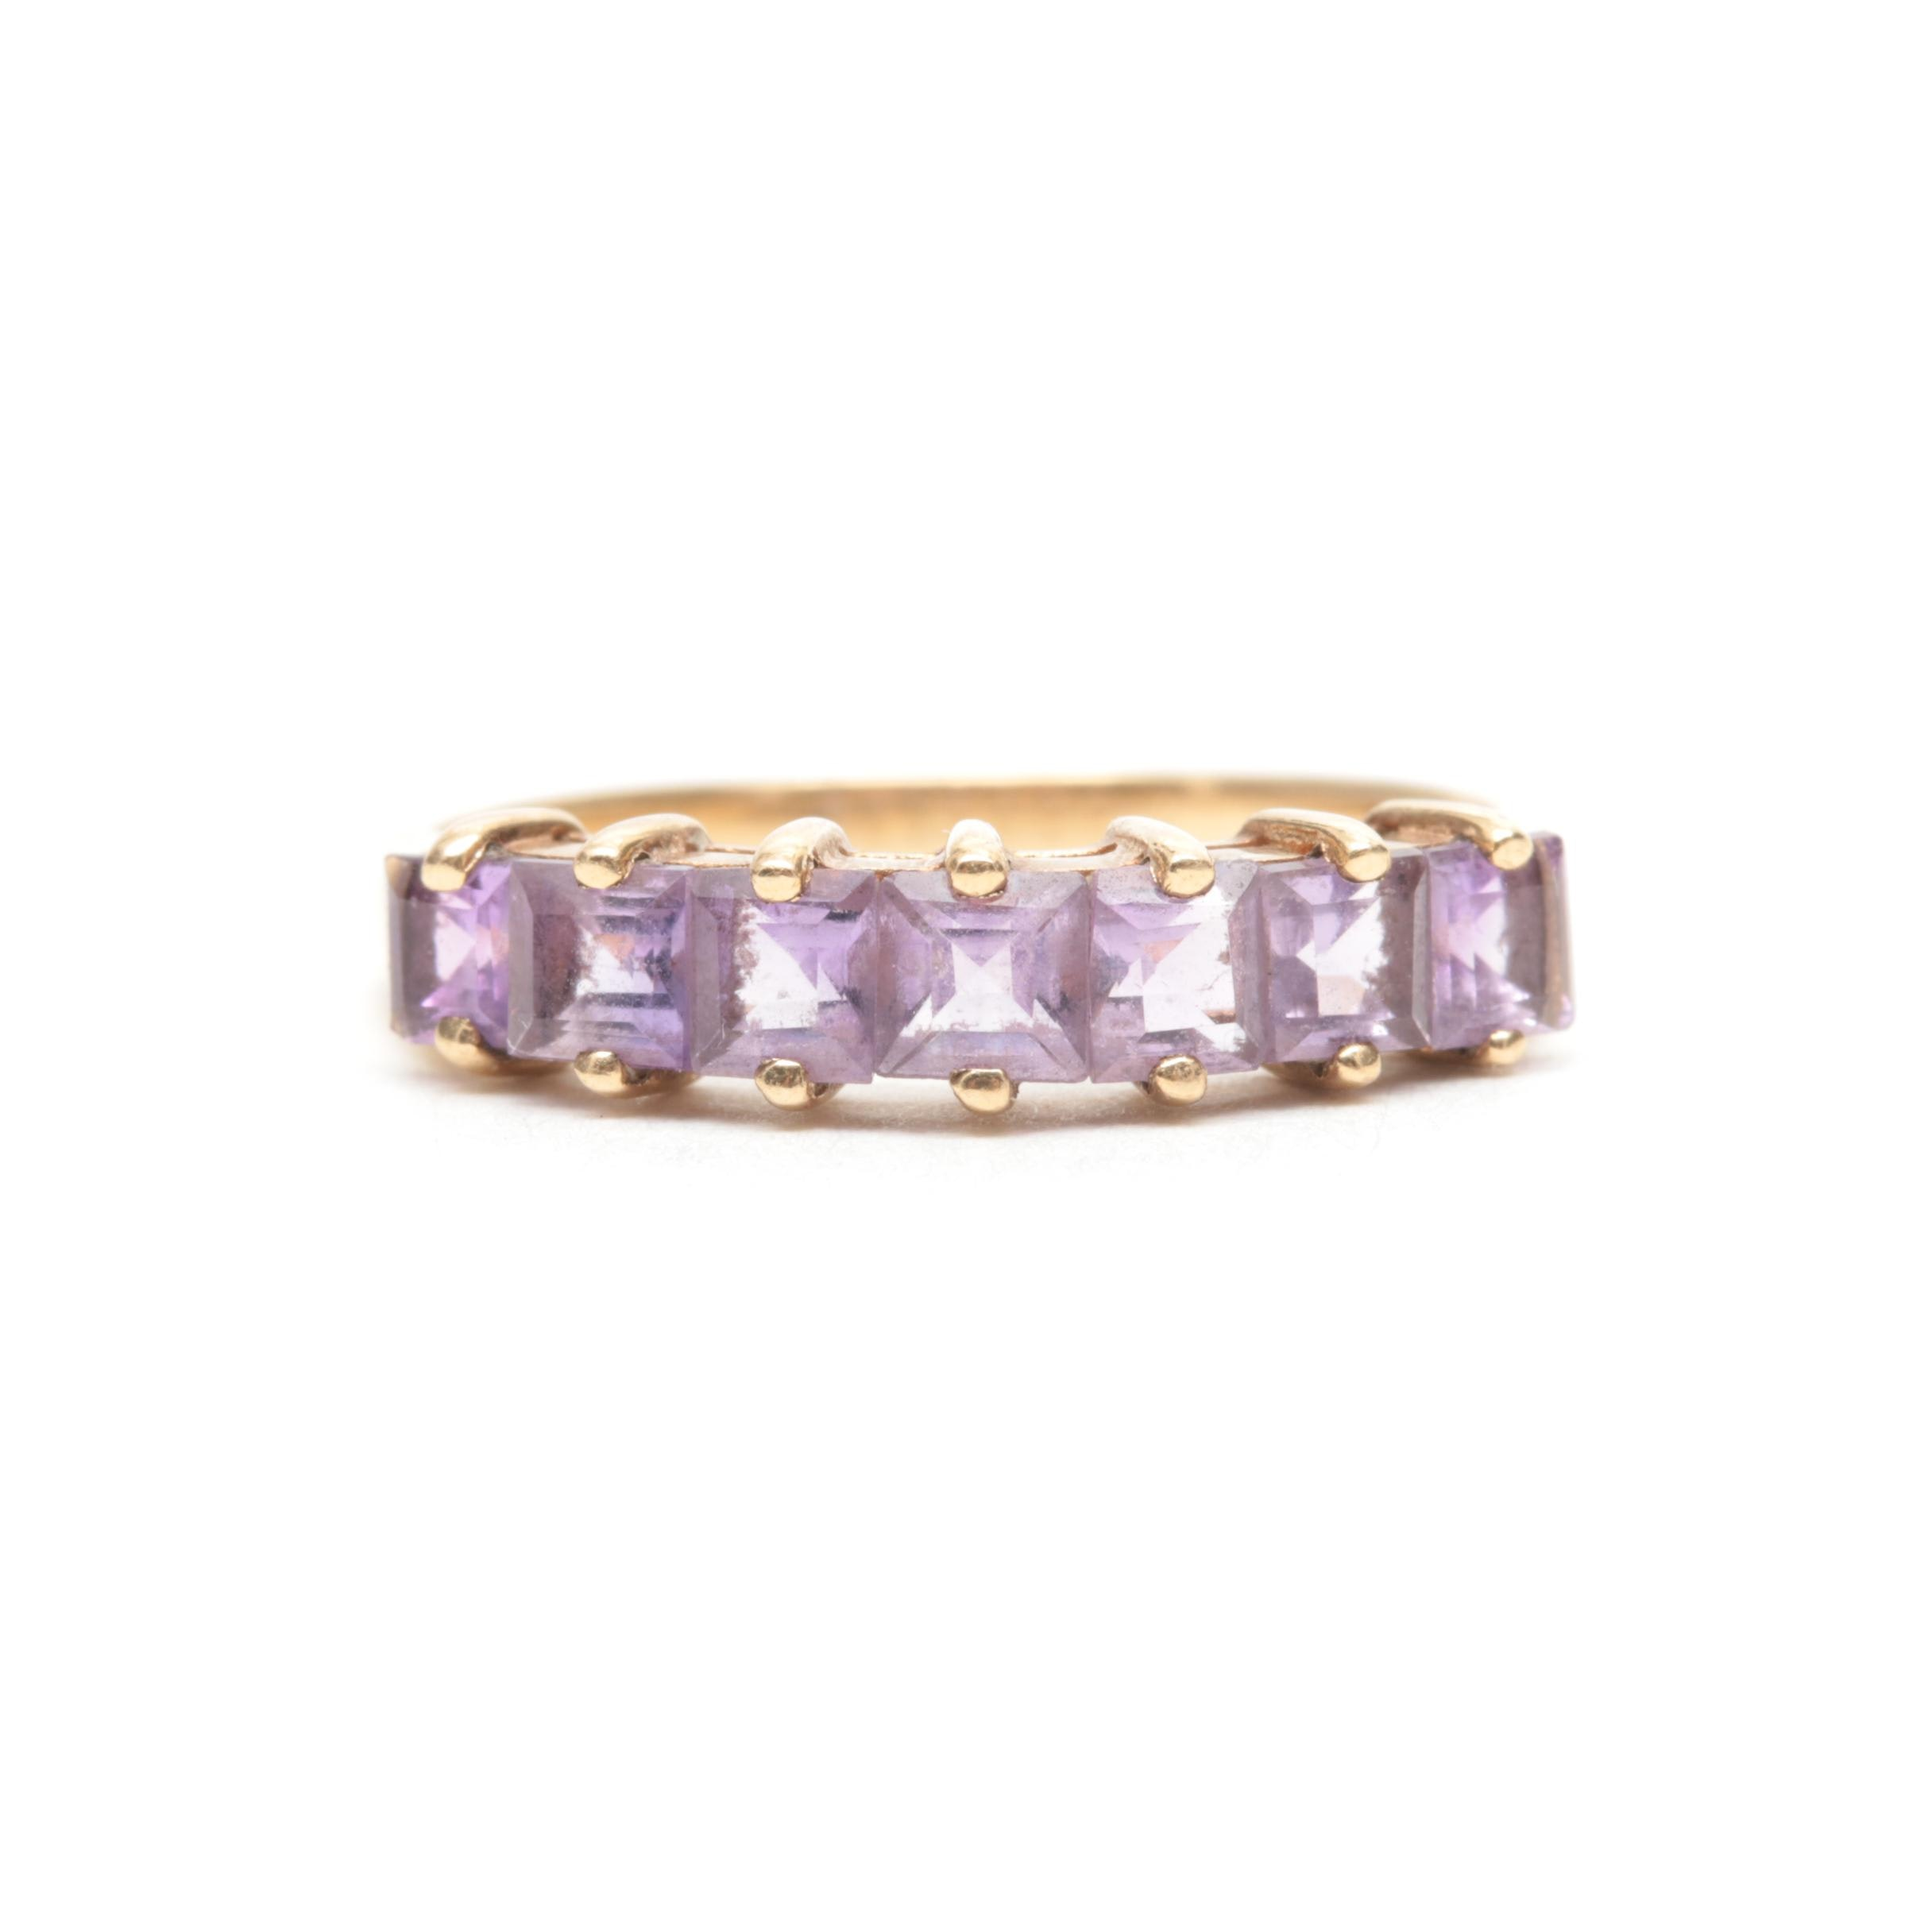 10K Yellow Gold Amethyst Band